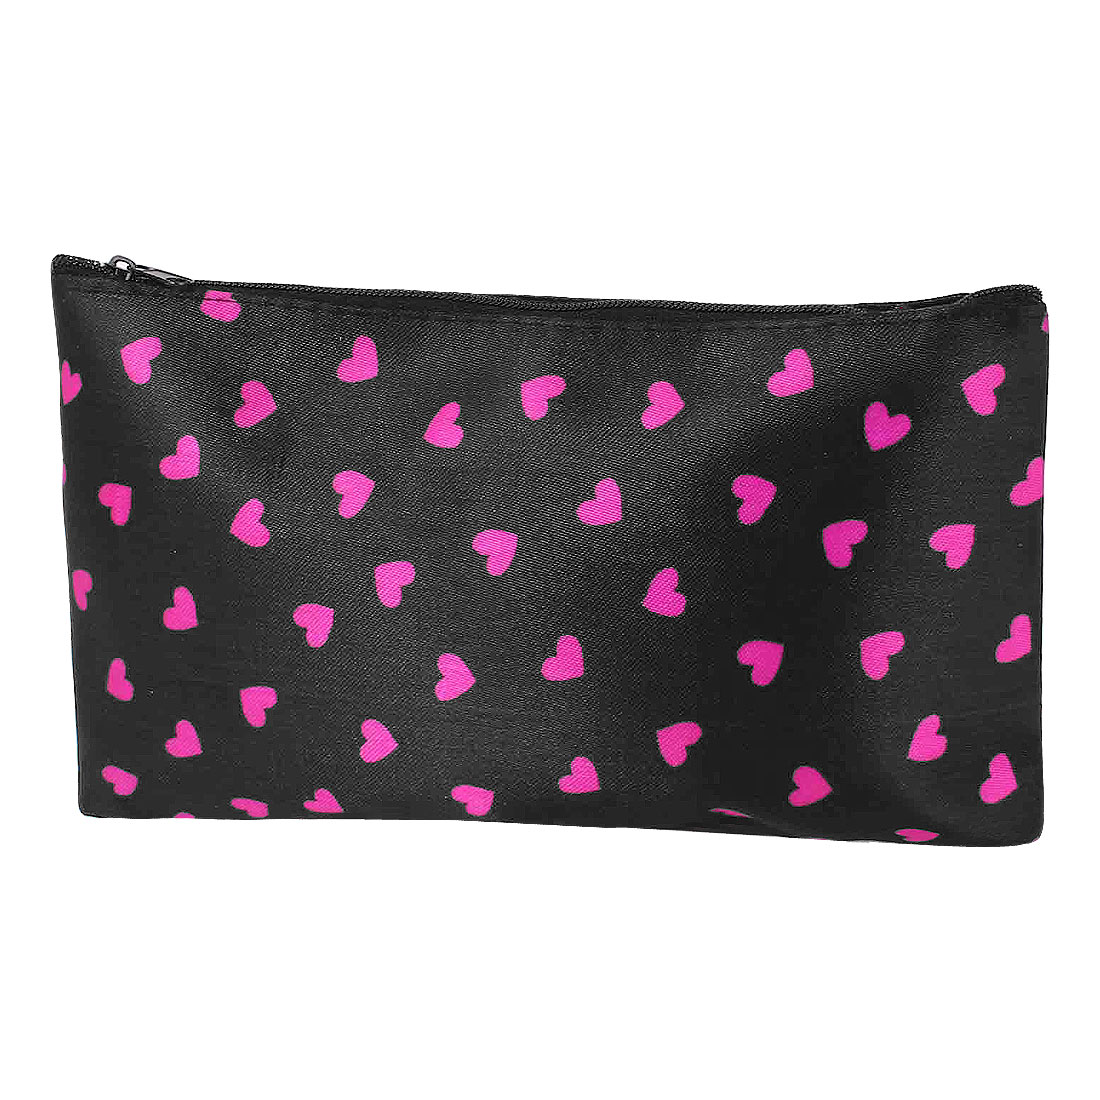 Lady Hearts Printed Makeup Cosmetic Bag Organizer Black Fuchsia